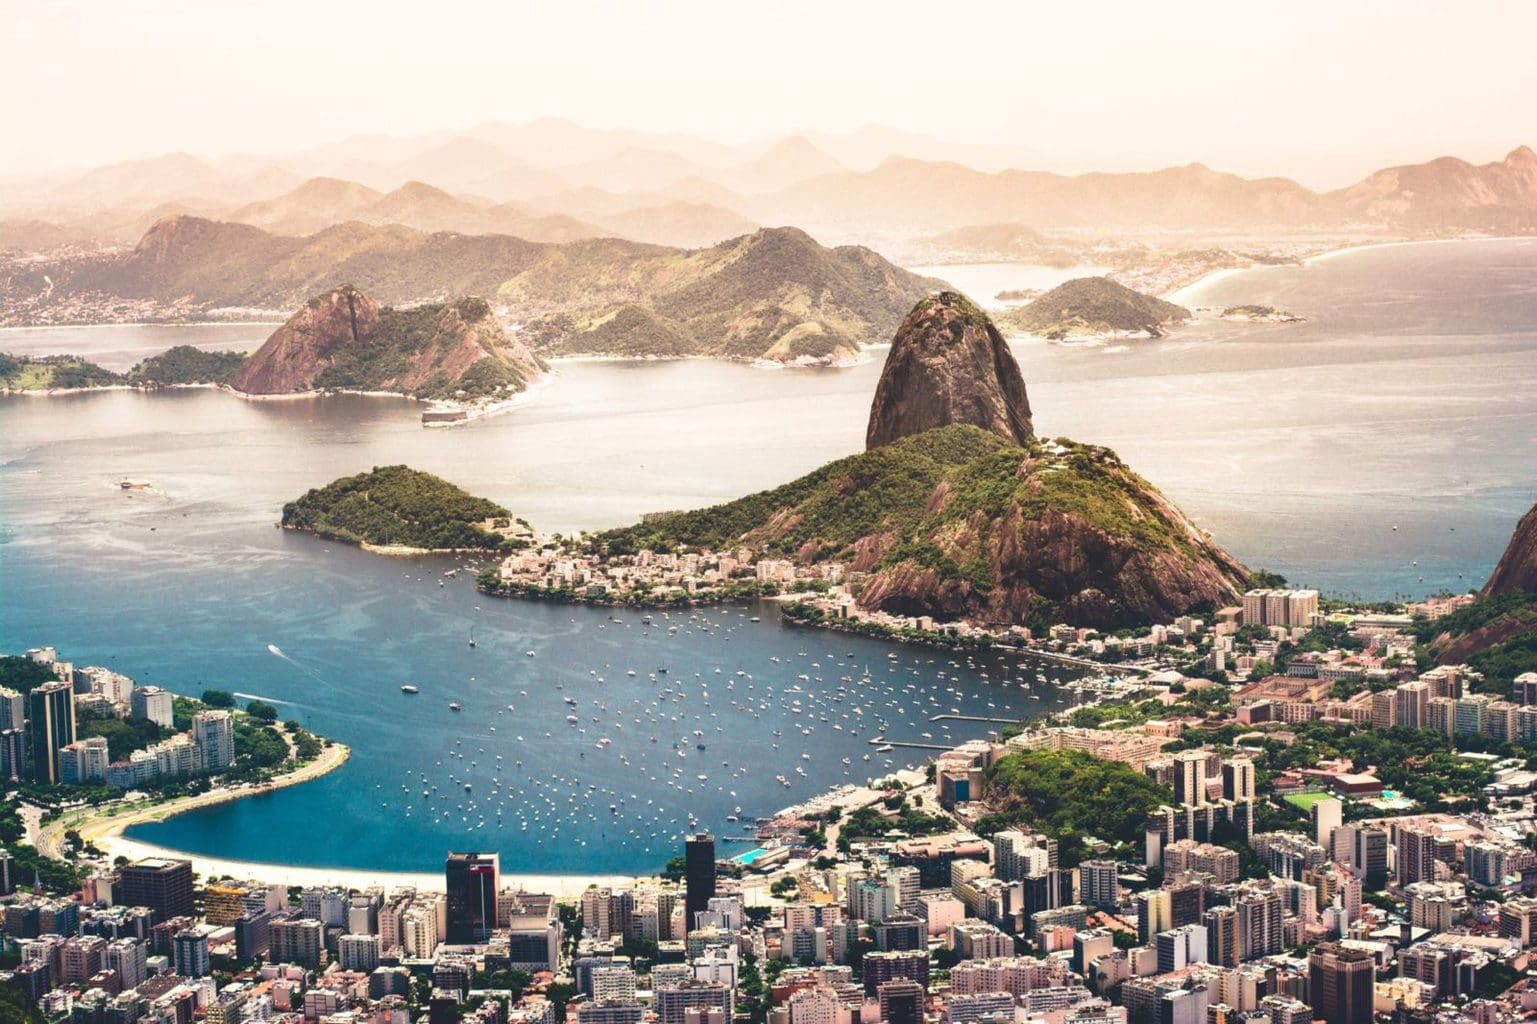 Picture of the bay of Rio de Janeiro, Brazil